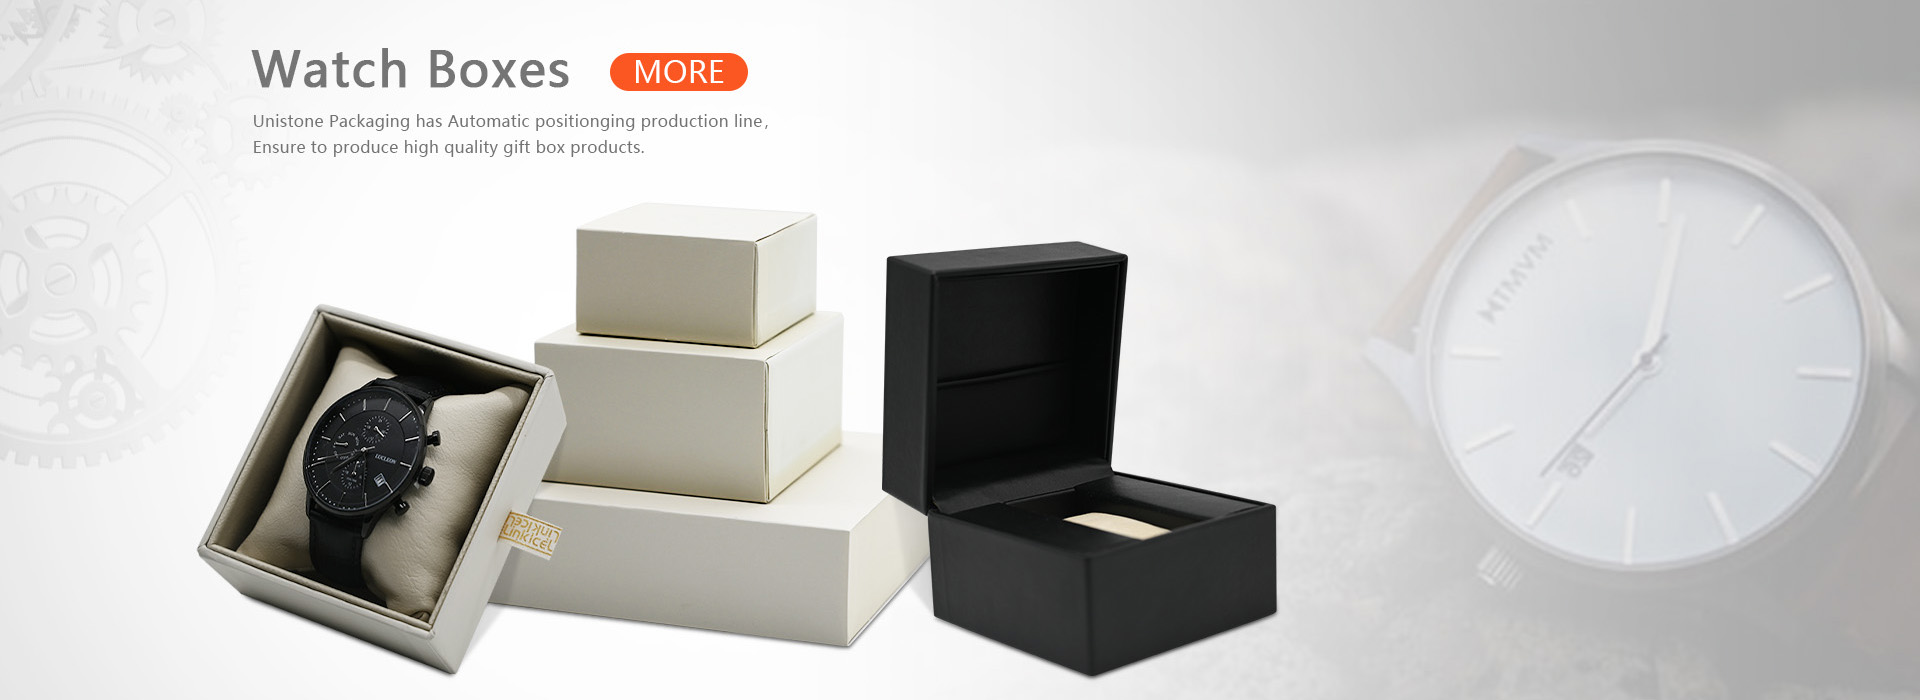 Watch Boxes Manufacturers